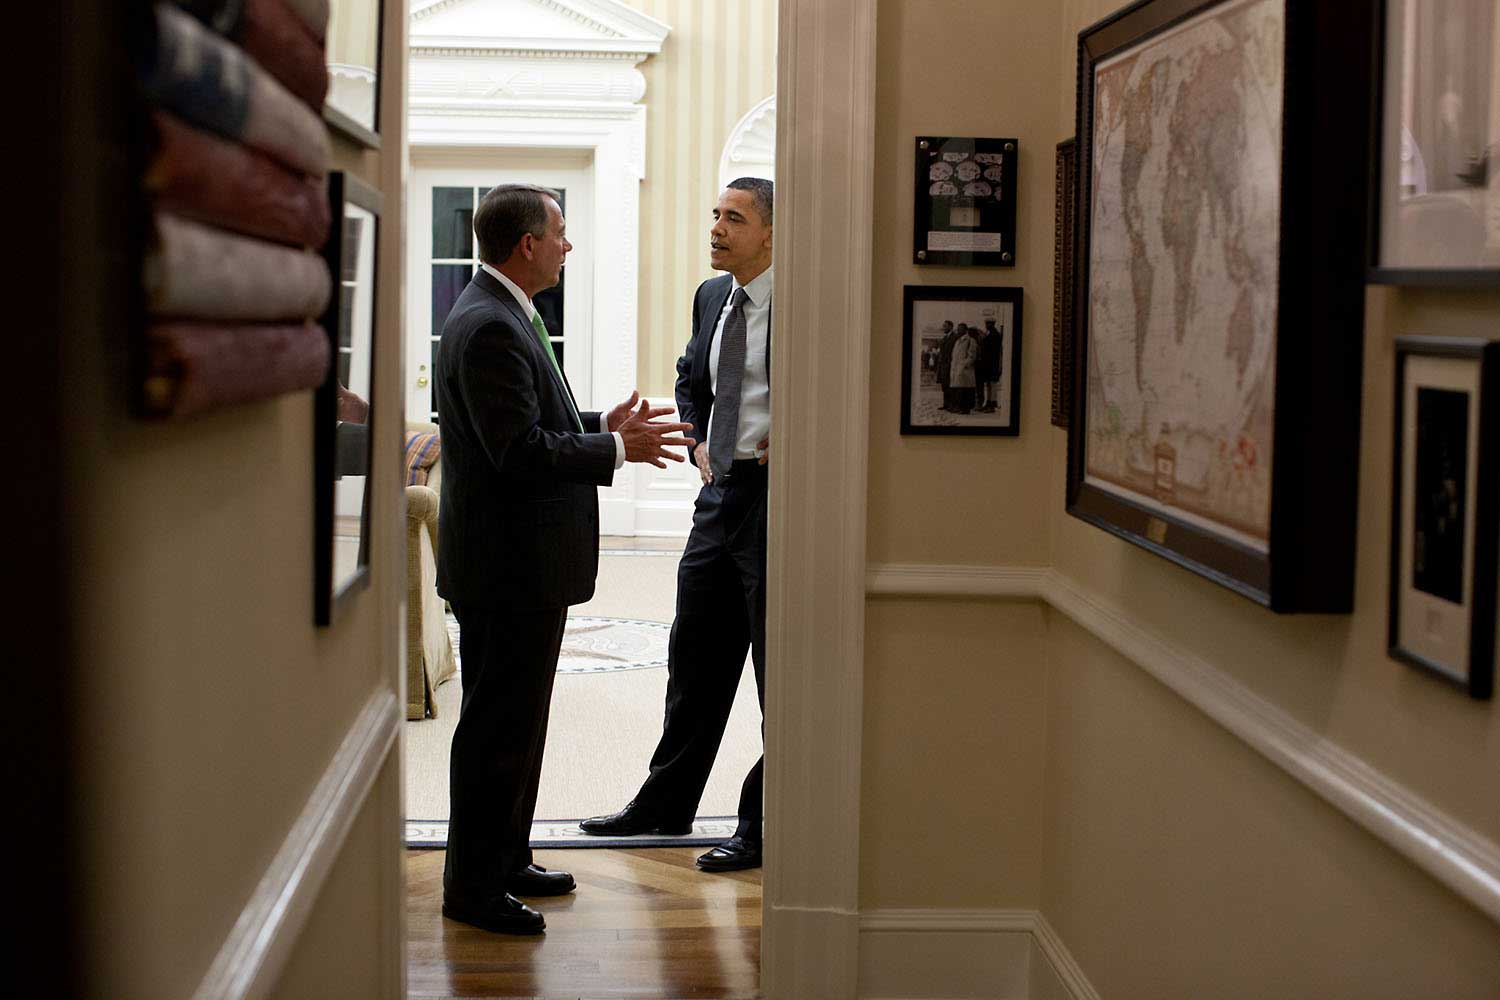 President Obama and House Speaker John Boehner talk in the Oval Office following a late night meeting on the budget, April 6, 2011.